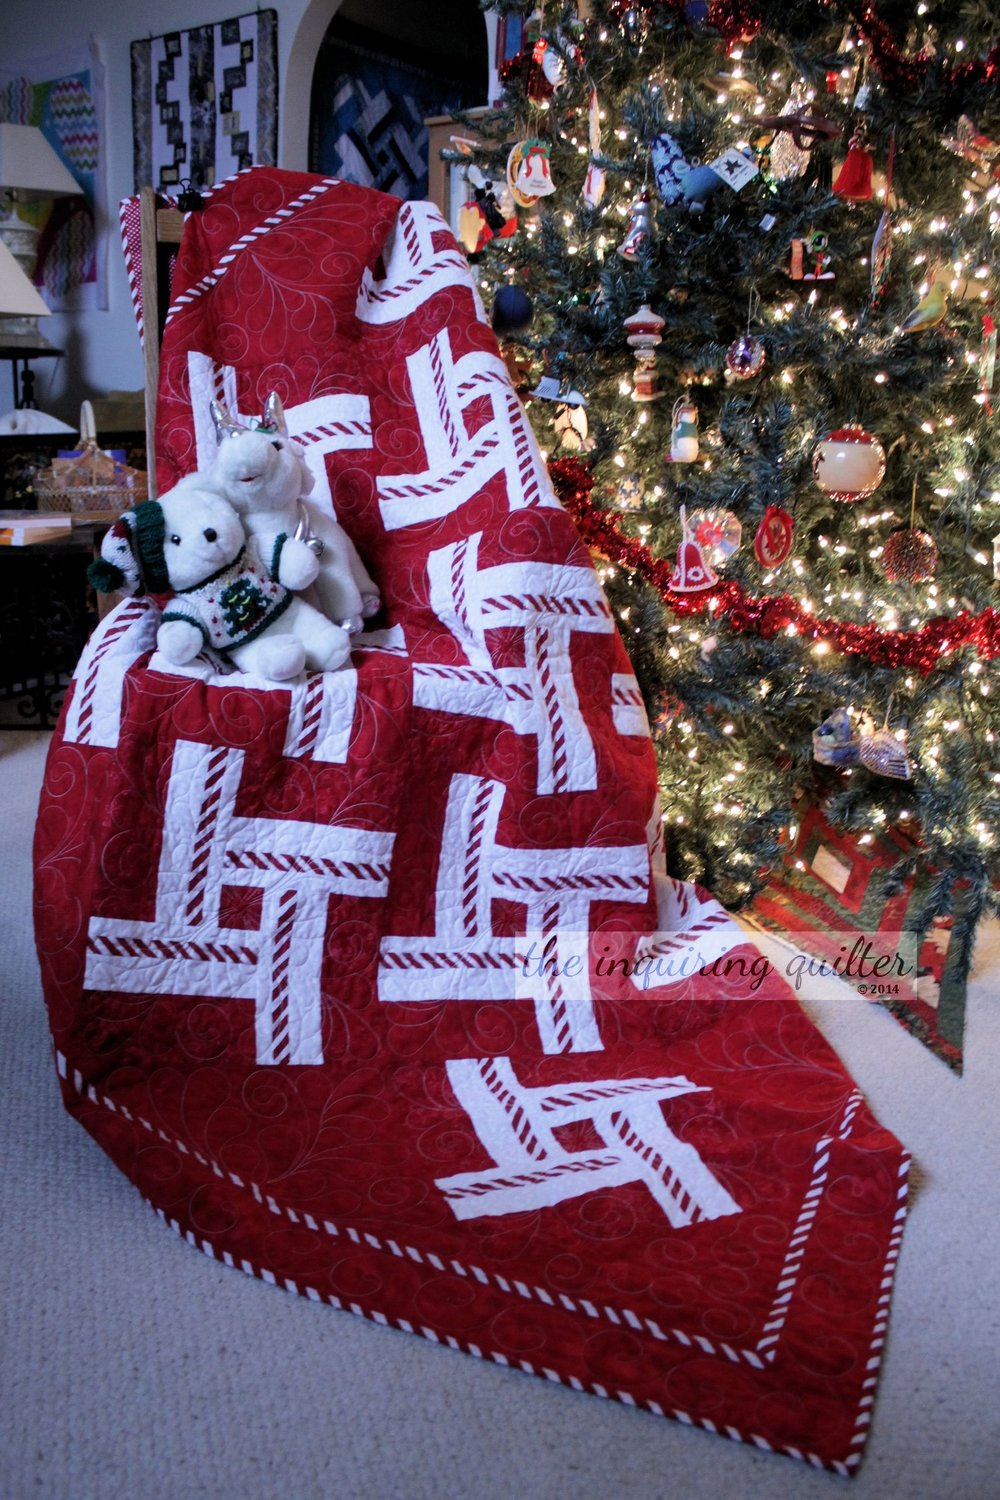 Peppermint Twist quilt - pattern in my book